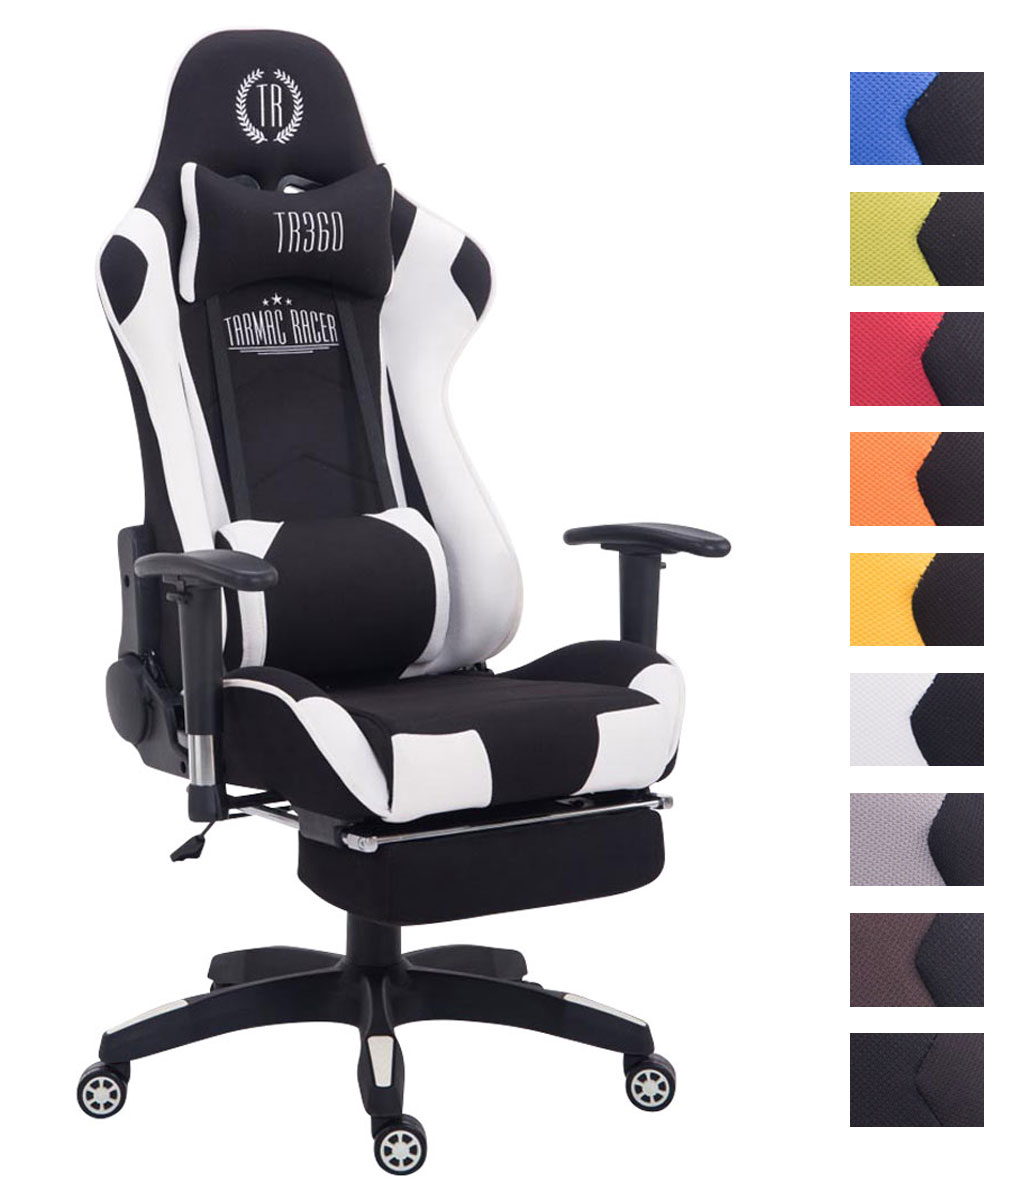 xl racing b rostuhl turbo stoff gaming drehstuhl 150 kg belastbar chefsessel ebay. Black Bedroom Furniture Sets. Home Design Ideas